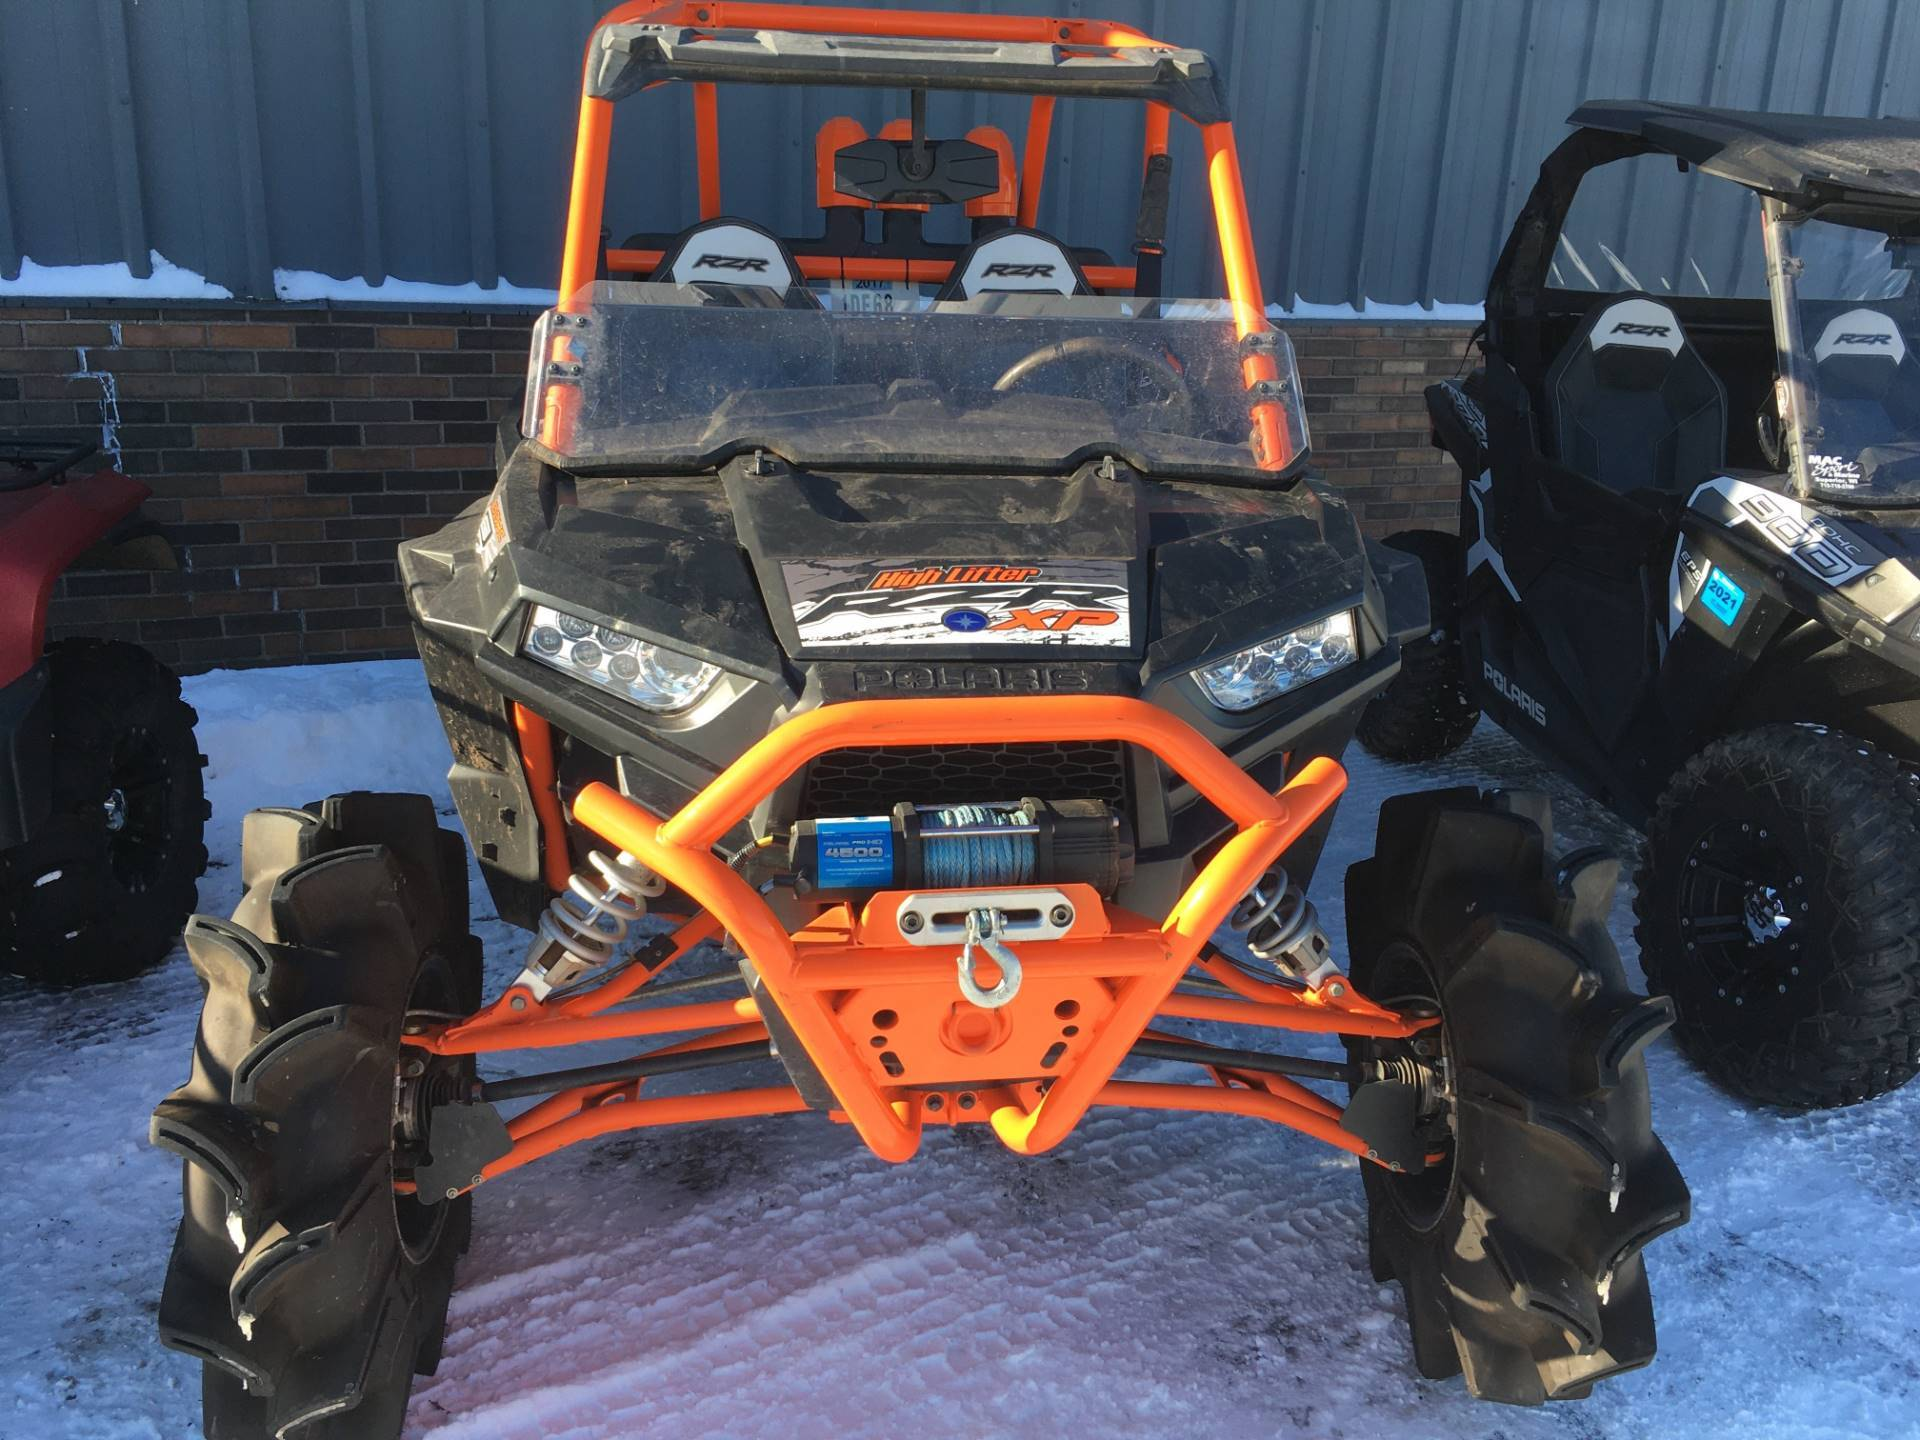 2015 Polaris 2015 POLARIS RZR® XP 1000 EPS HIGH LIFTER EDITION in Trego, Wisconsin - Photo 1